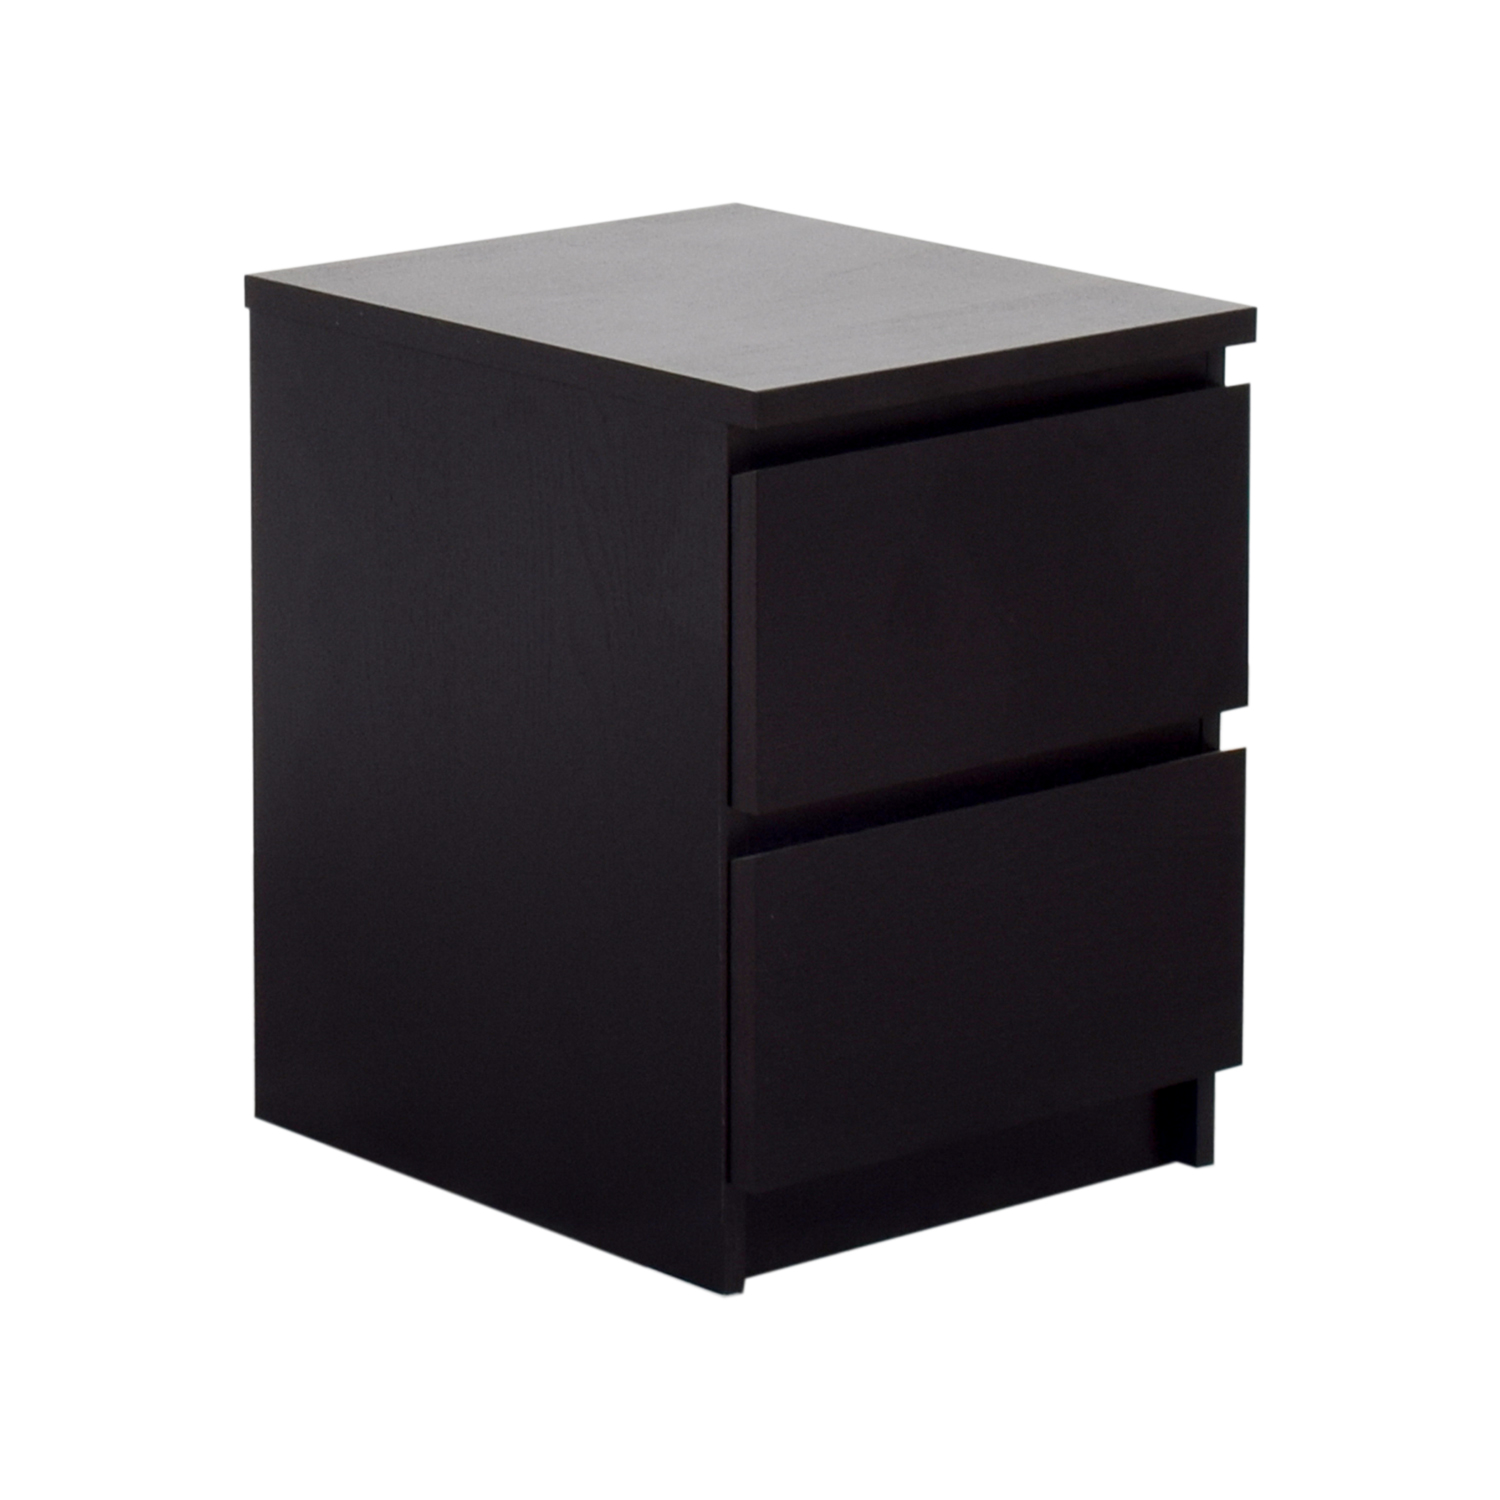 57 off ikea ikea malm two drawer chest tables. Black Bedroom Furniture Sets. Home Design Ideas